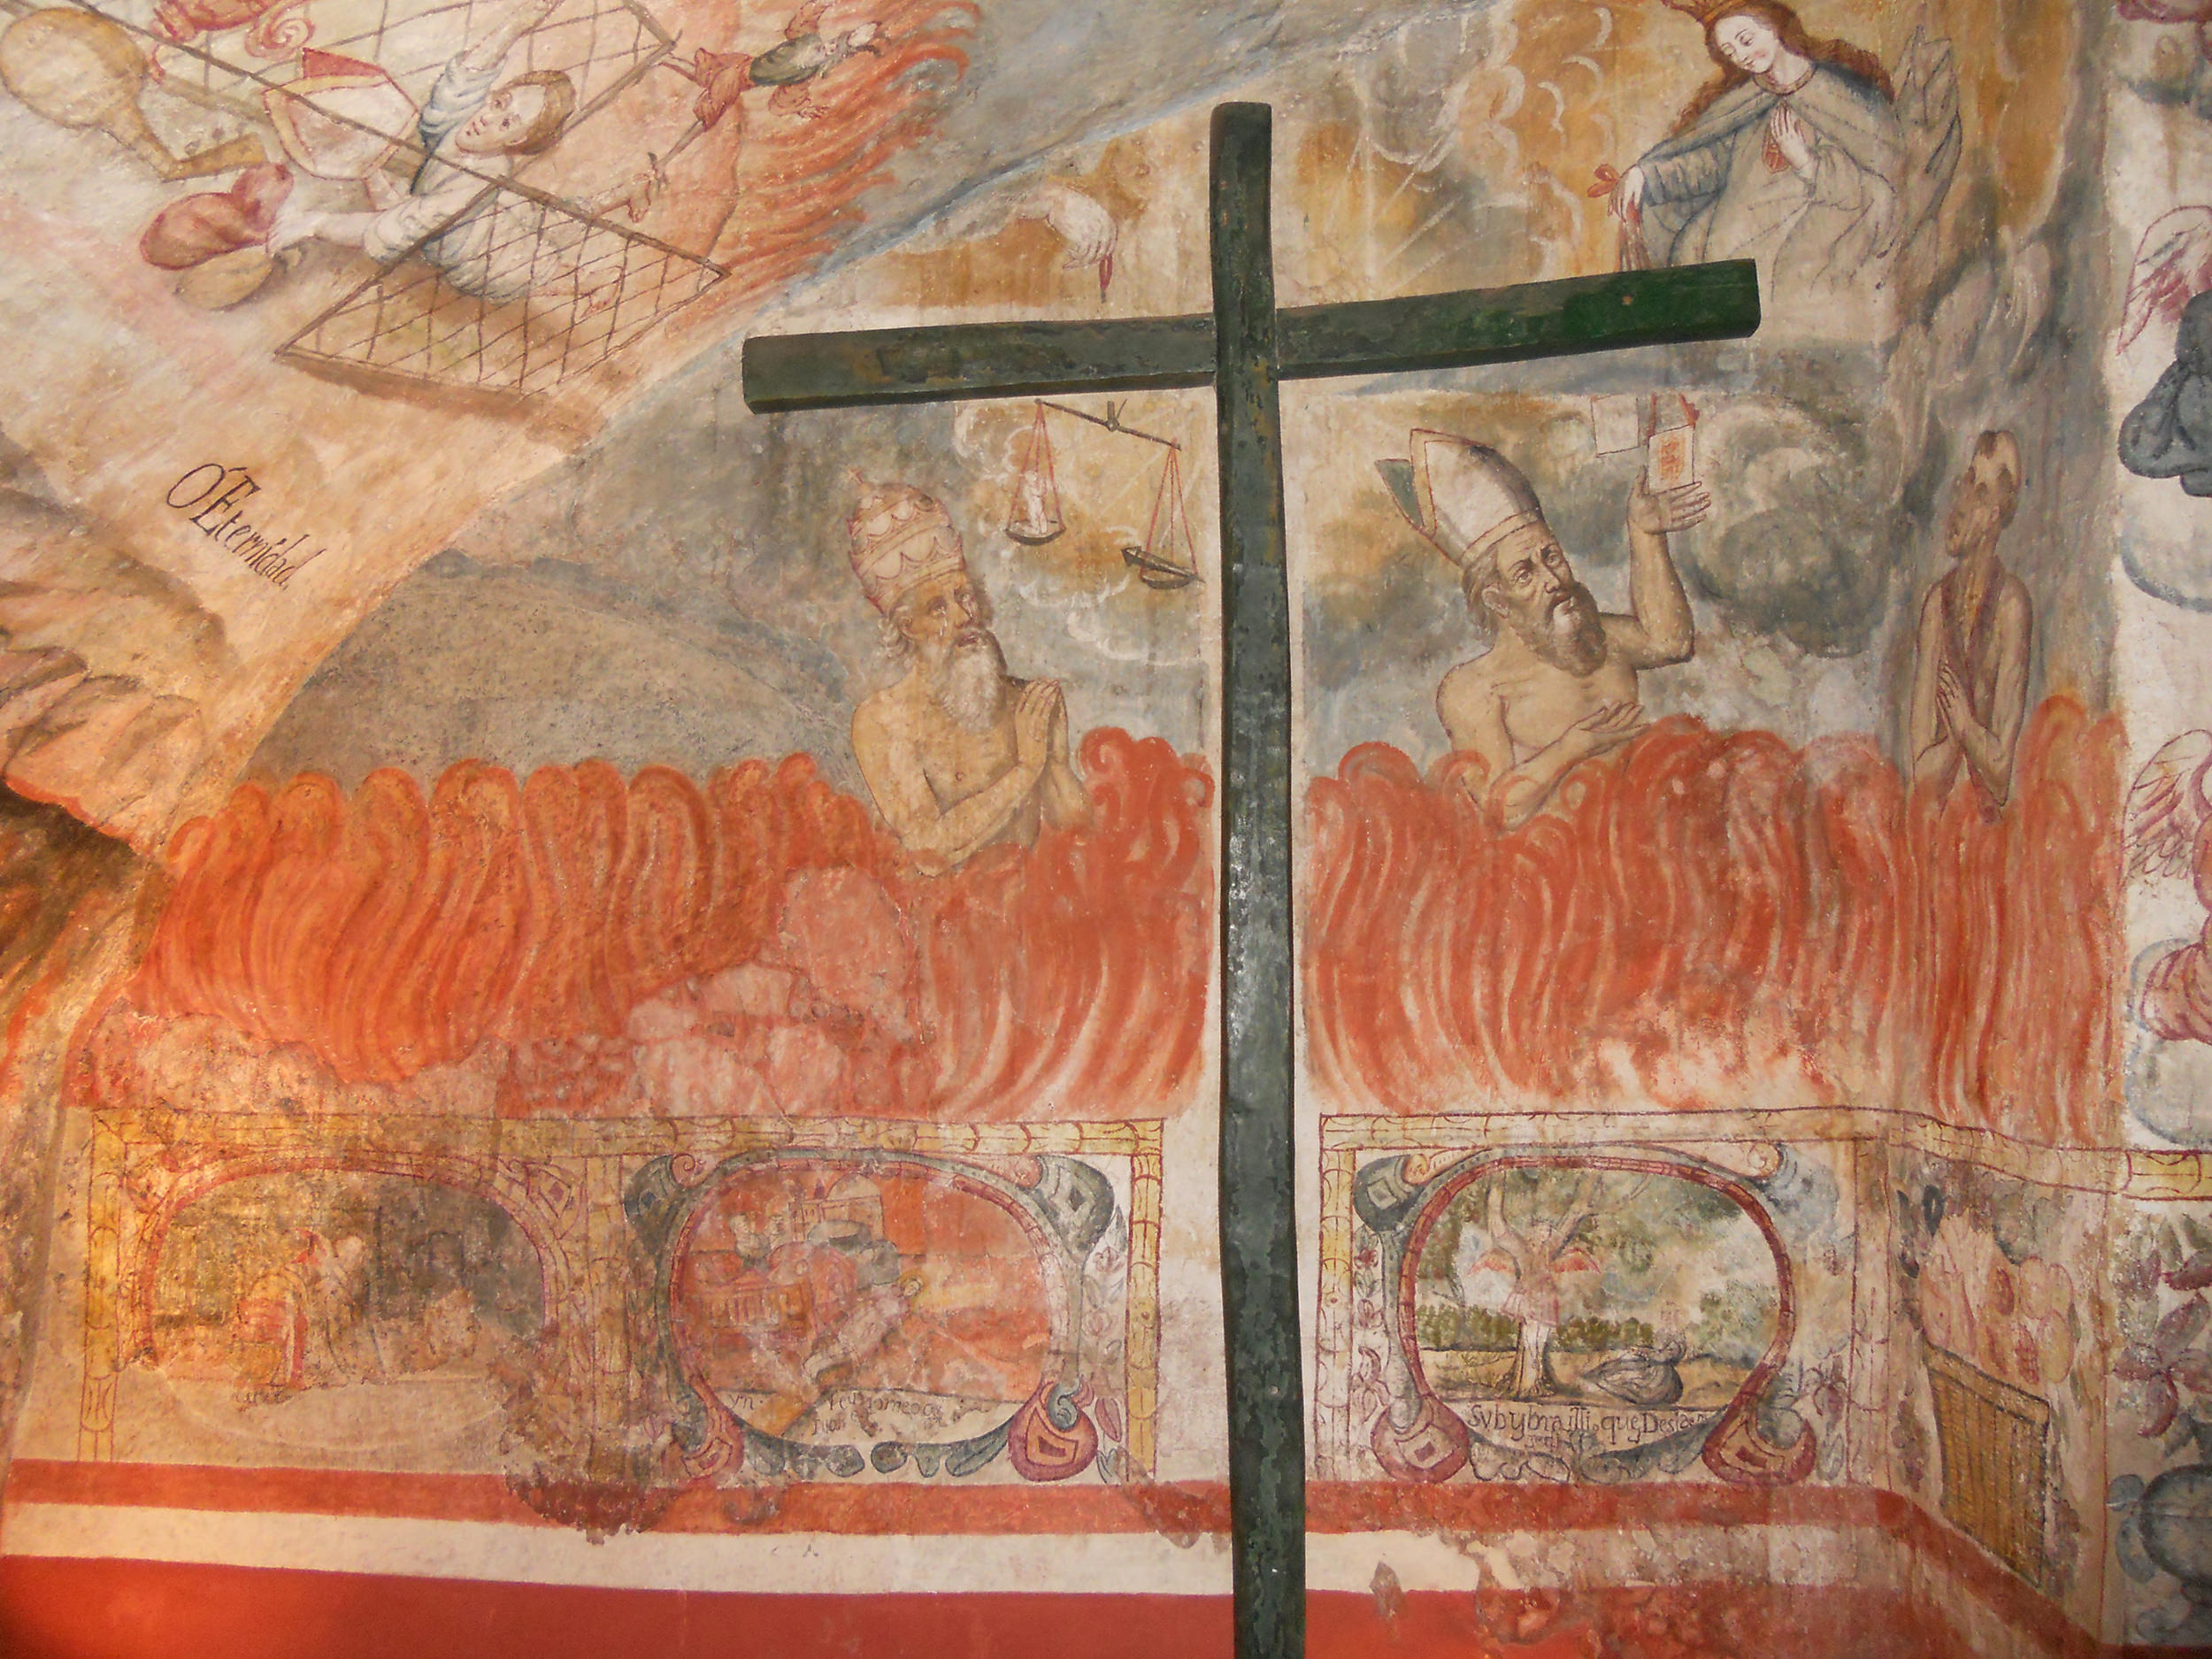 Fig. 35 Mural of the souls of Purgatory, 18th century. Celda Salamanca, Convento de la Merced (Cuzco). Photo by author.